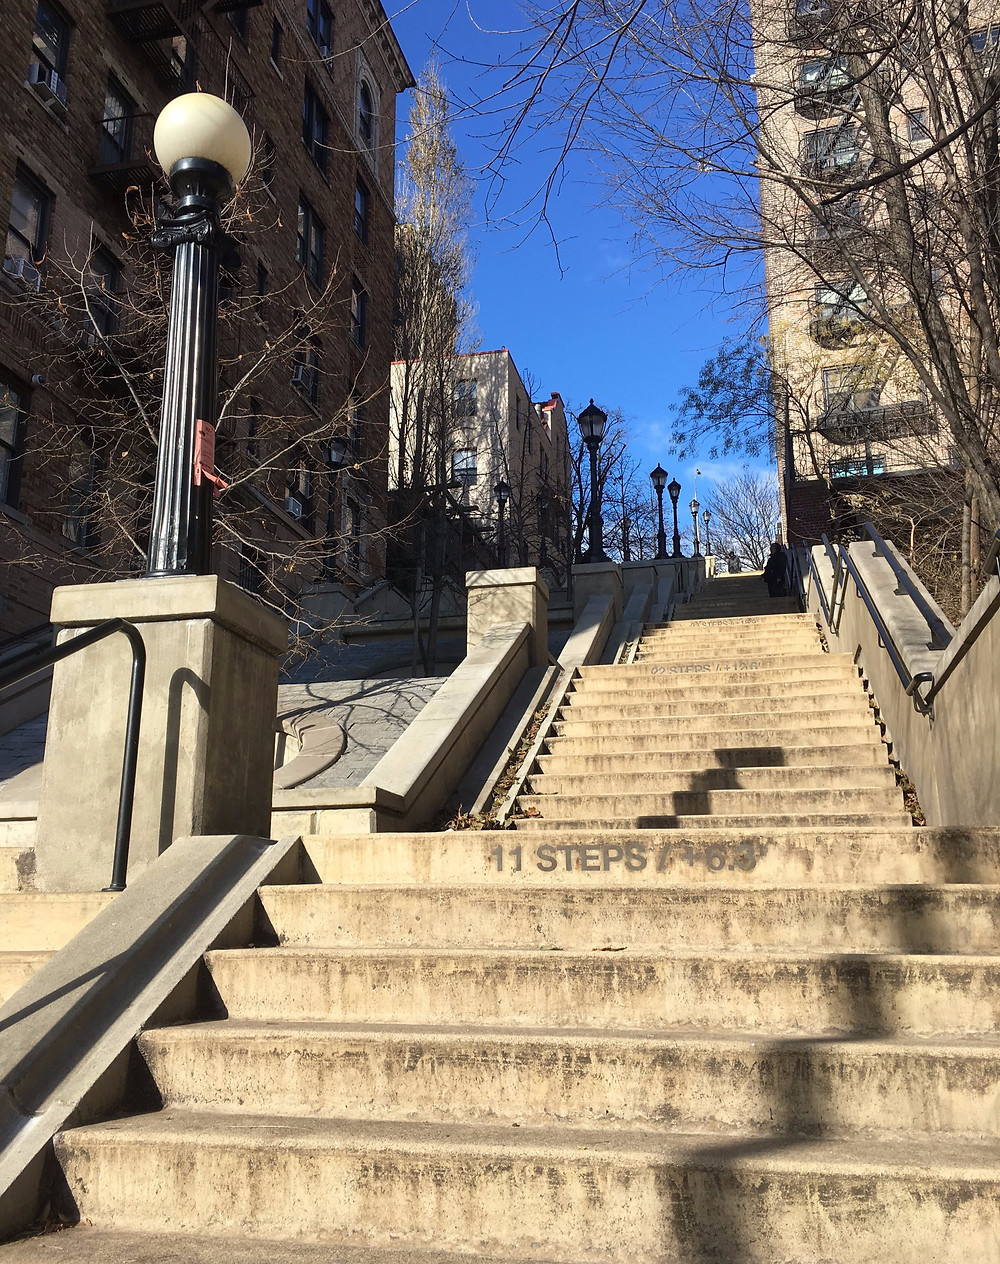 The 215th Street Steps are between Broadway and Park Terrace East in Inwood